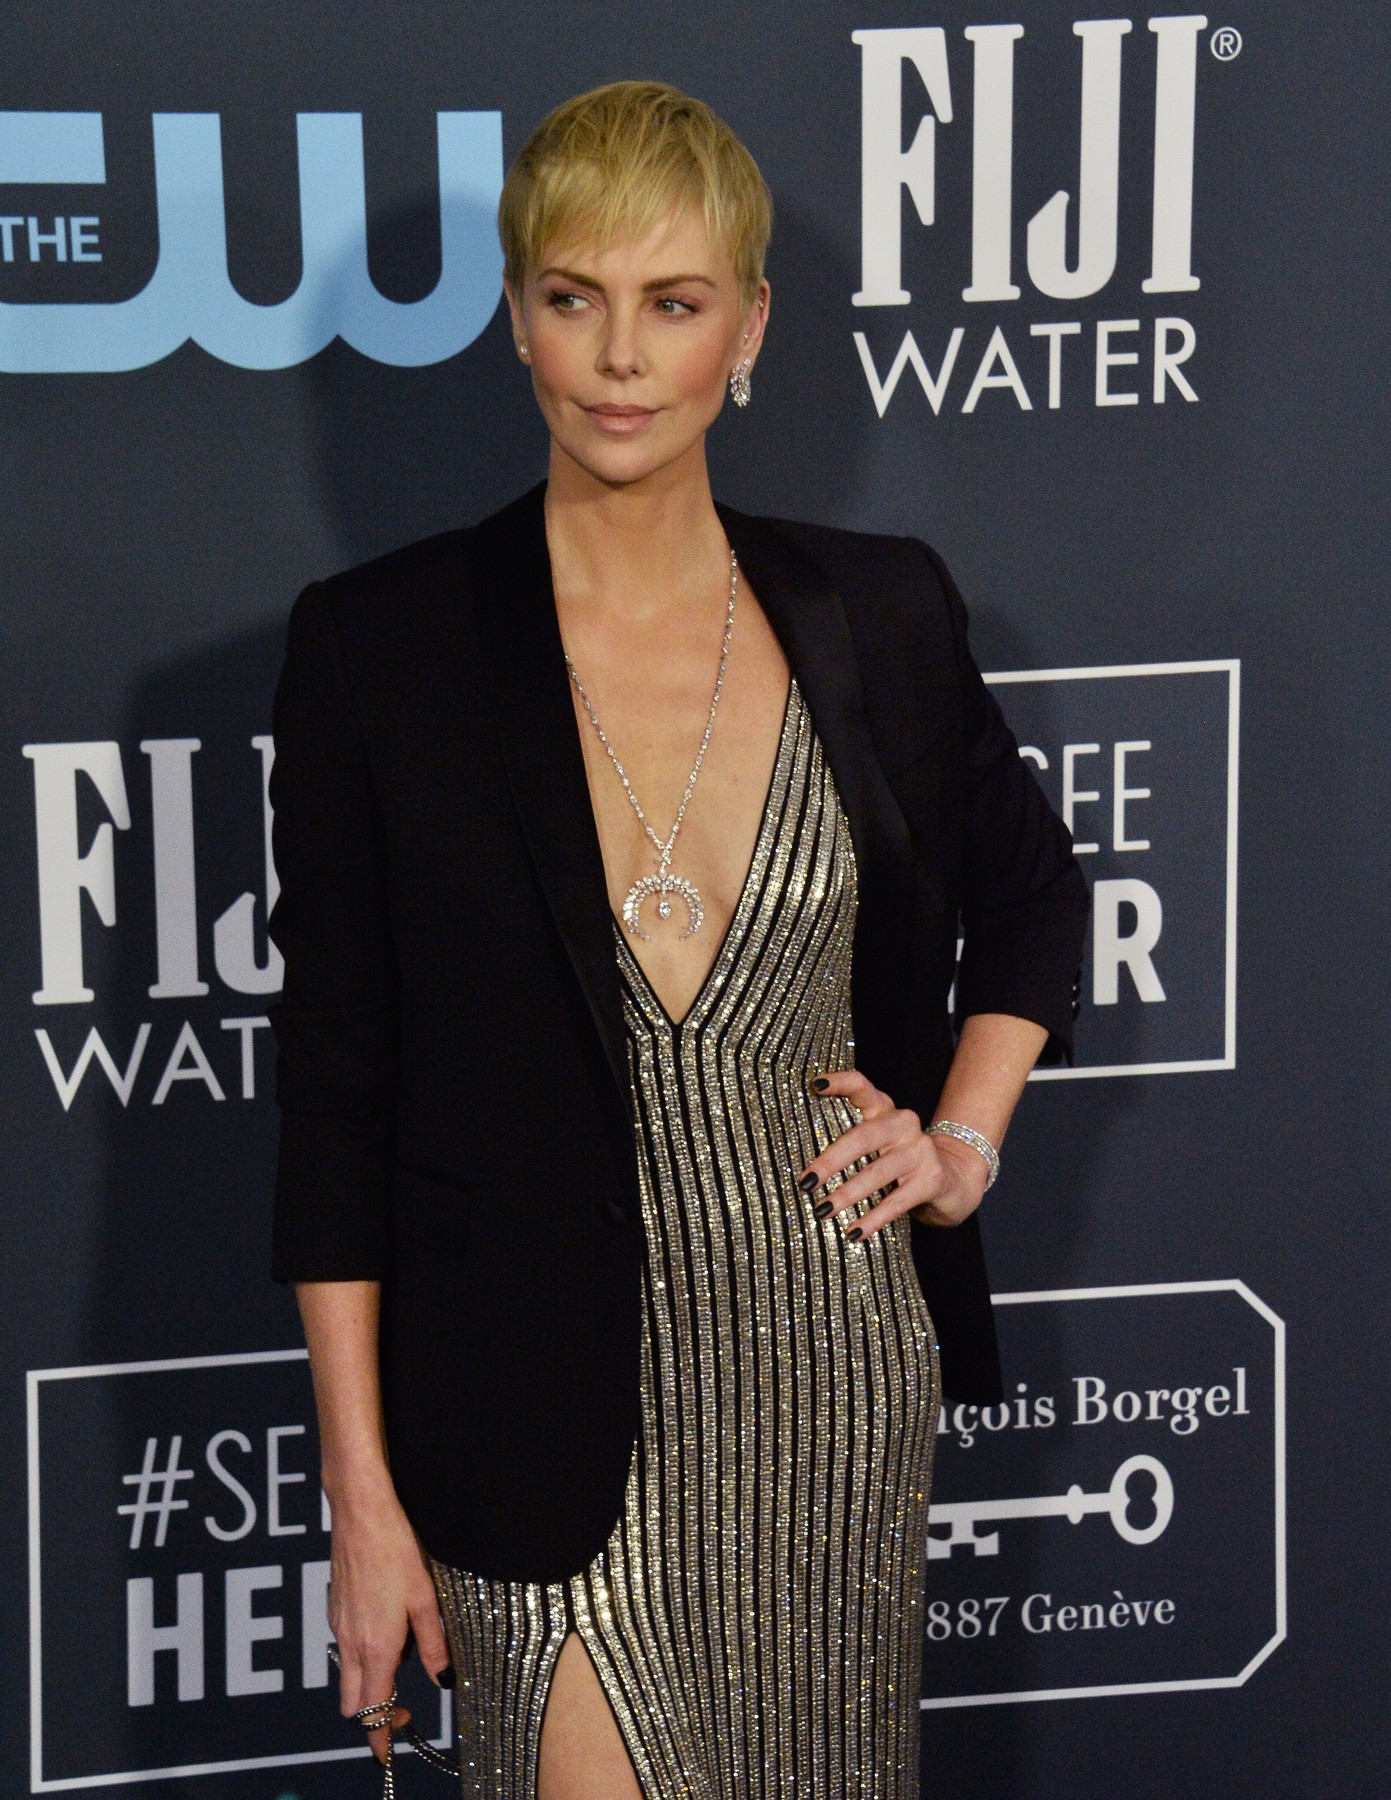 Actress Charlize Theron attends the 25th annual Critics' Choice Awards at Barker Hanger in Santa Monica, California on Sunday, January 12, 2020. Photo by /UPI, Image: 492385991, License: Rights-managed, Restrictions: , Model Release: no, Credit line: JIM RUYMEN / UPI / Profimedia